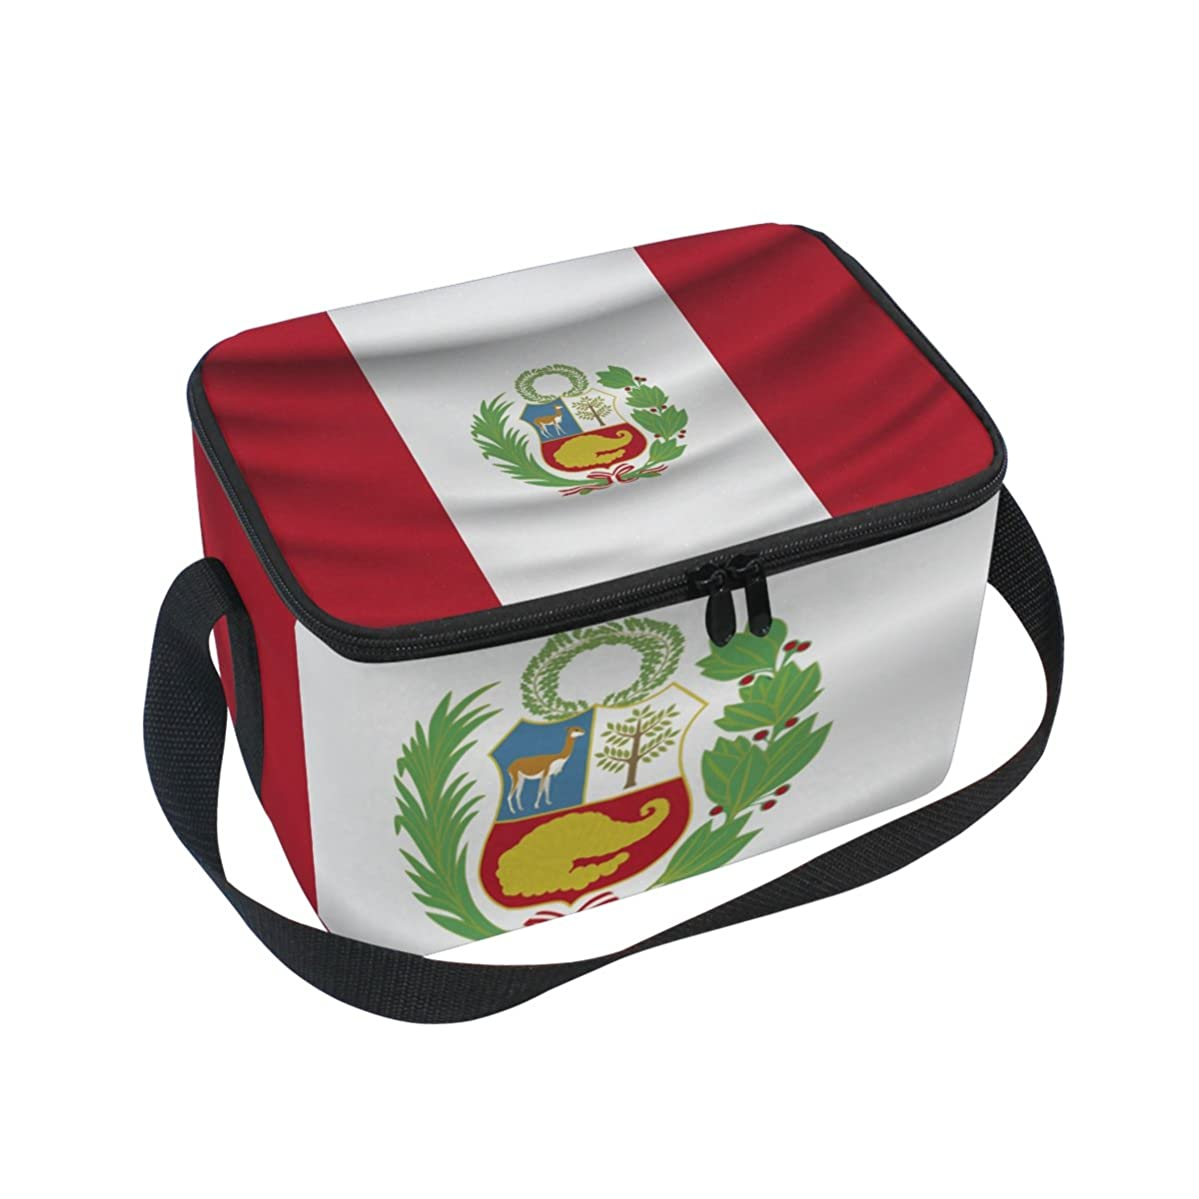 Peru Flag Insulated Lunch Box Cooler Bag Reusable Tote Picnic Bags for Travel, Camping, Hiking and RVing